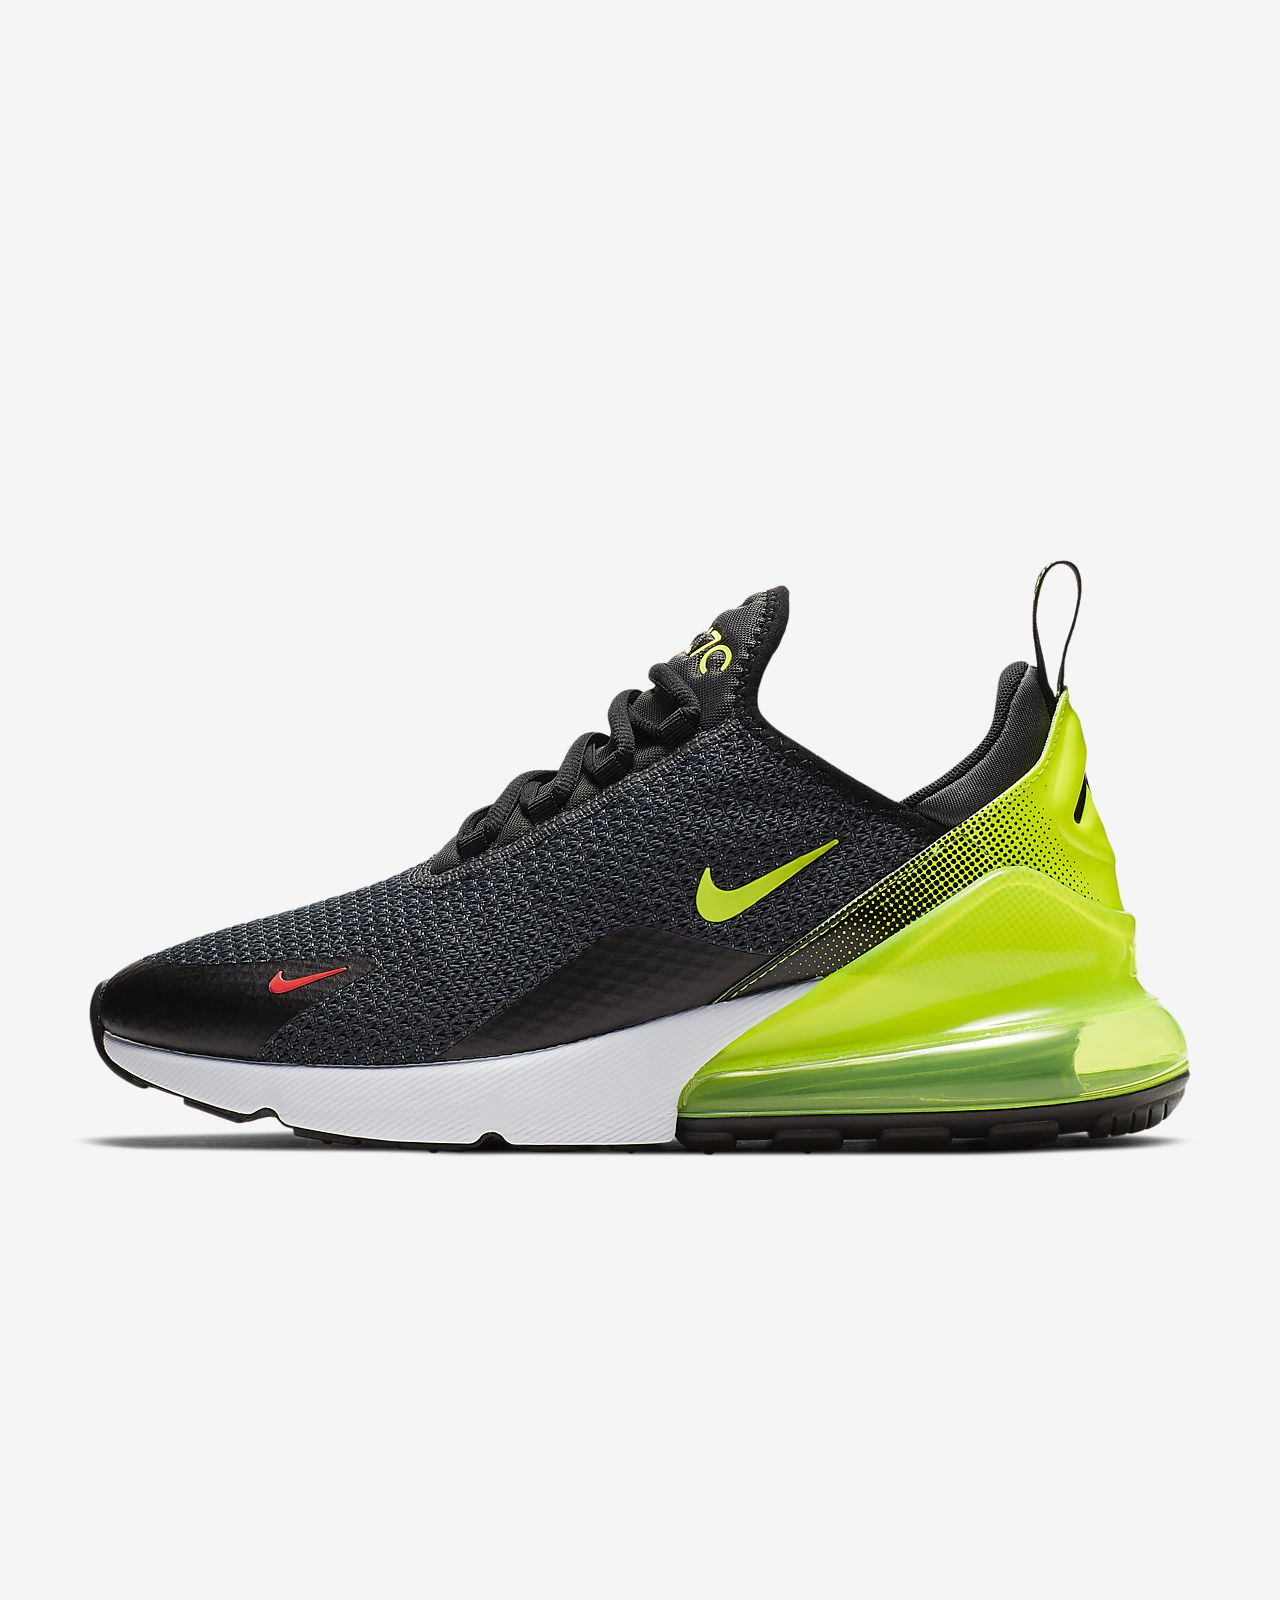 33a81095e5 Nike Air Max 270 SE Men's Shoe